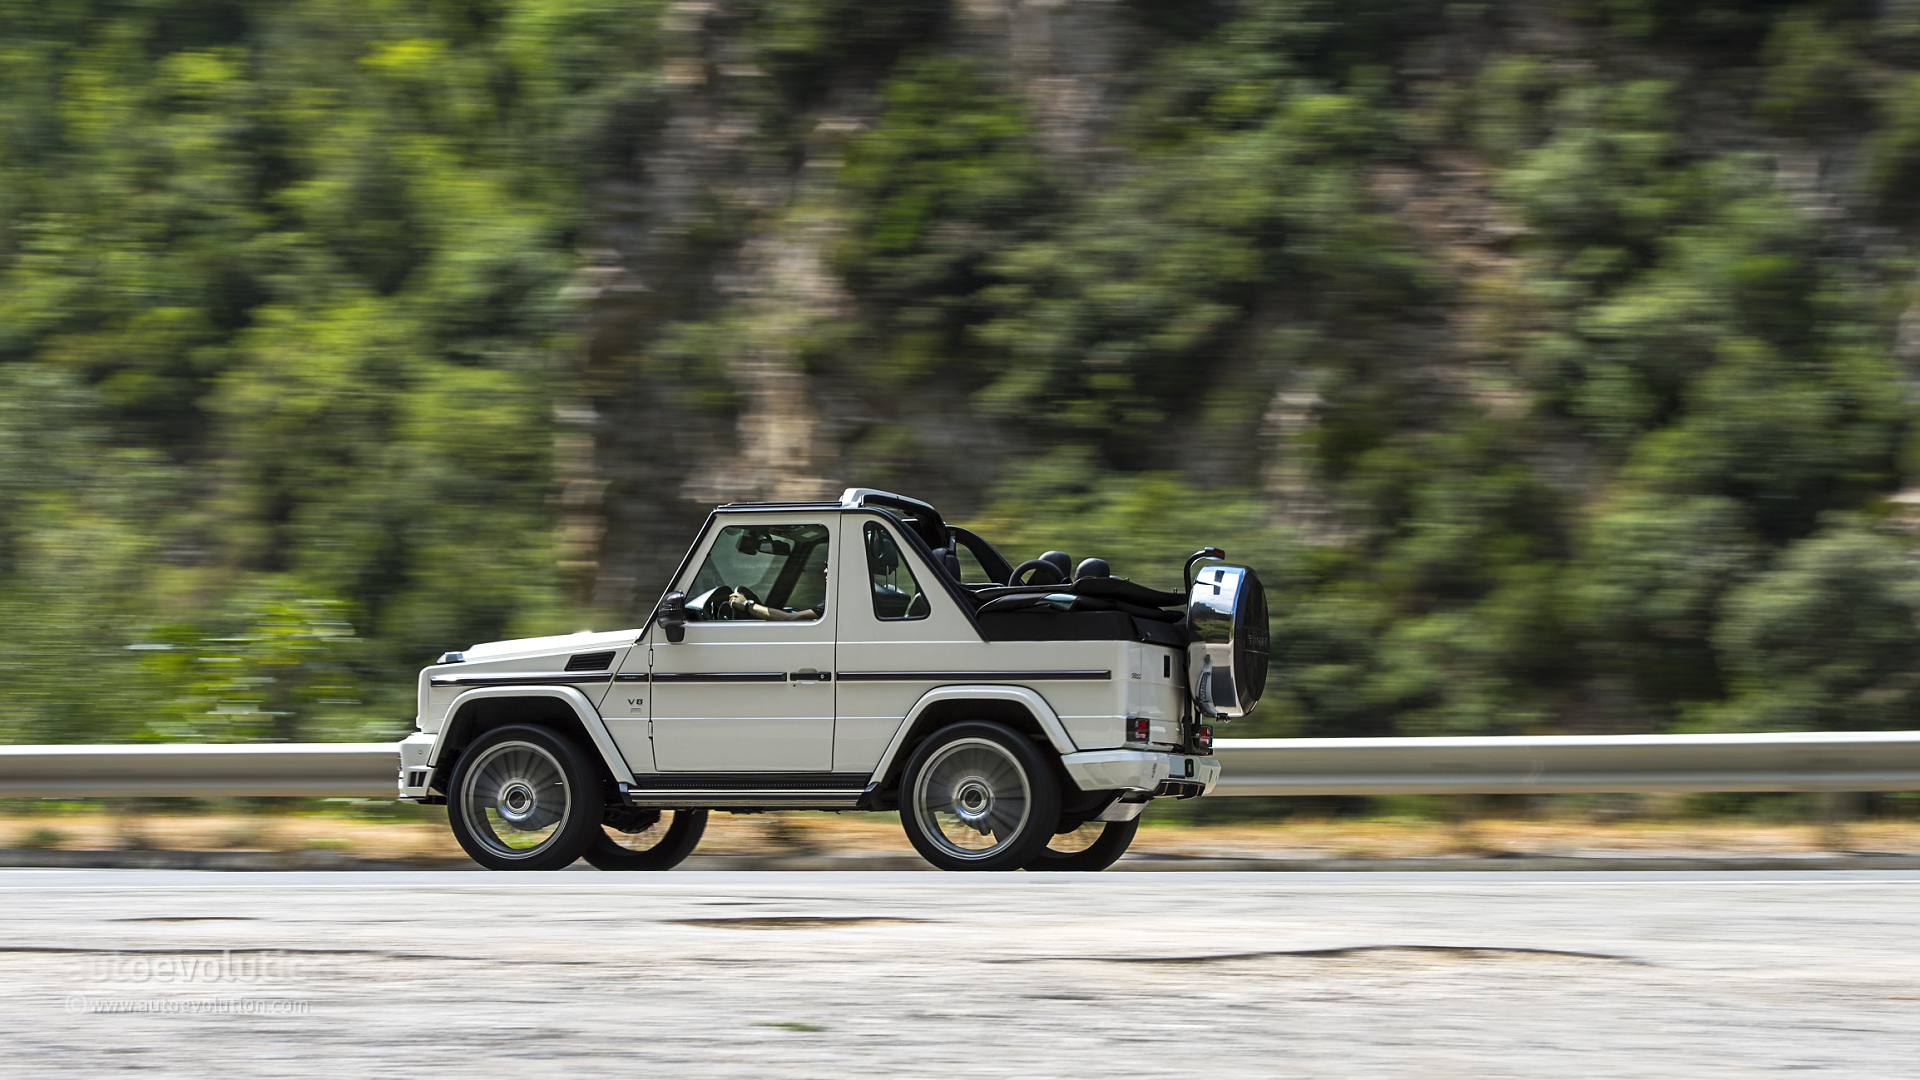 Mercedes benz g 500 cabriolet tested by autoevolution for Mercedes benz g cabriolet